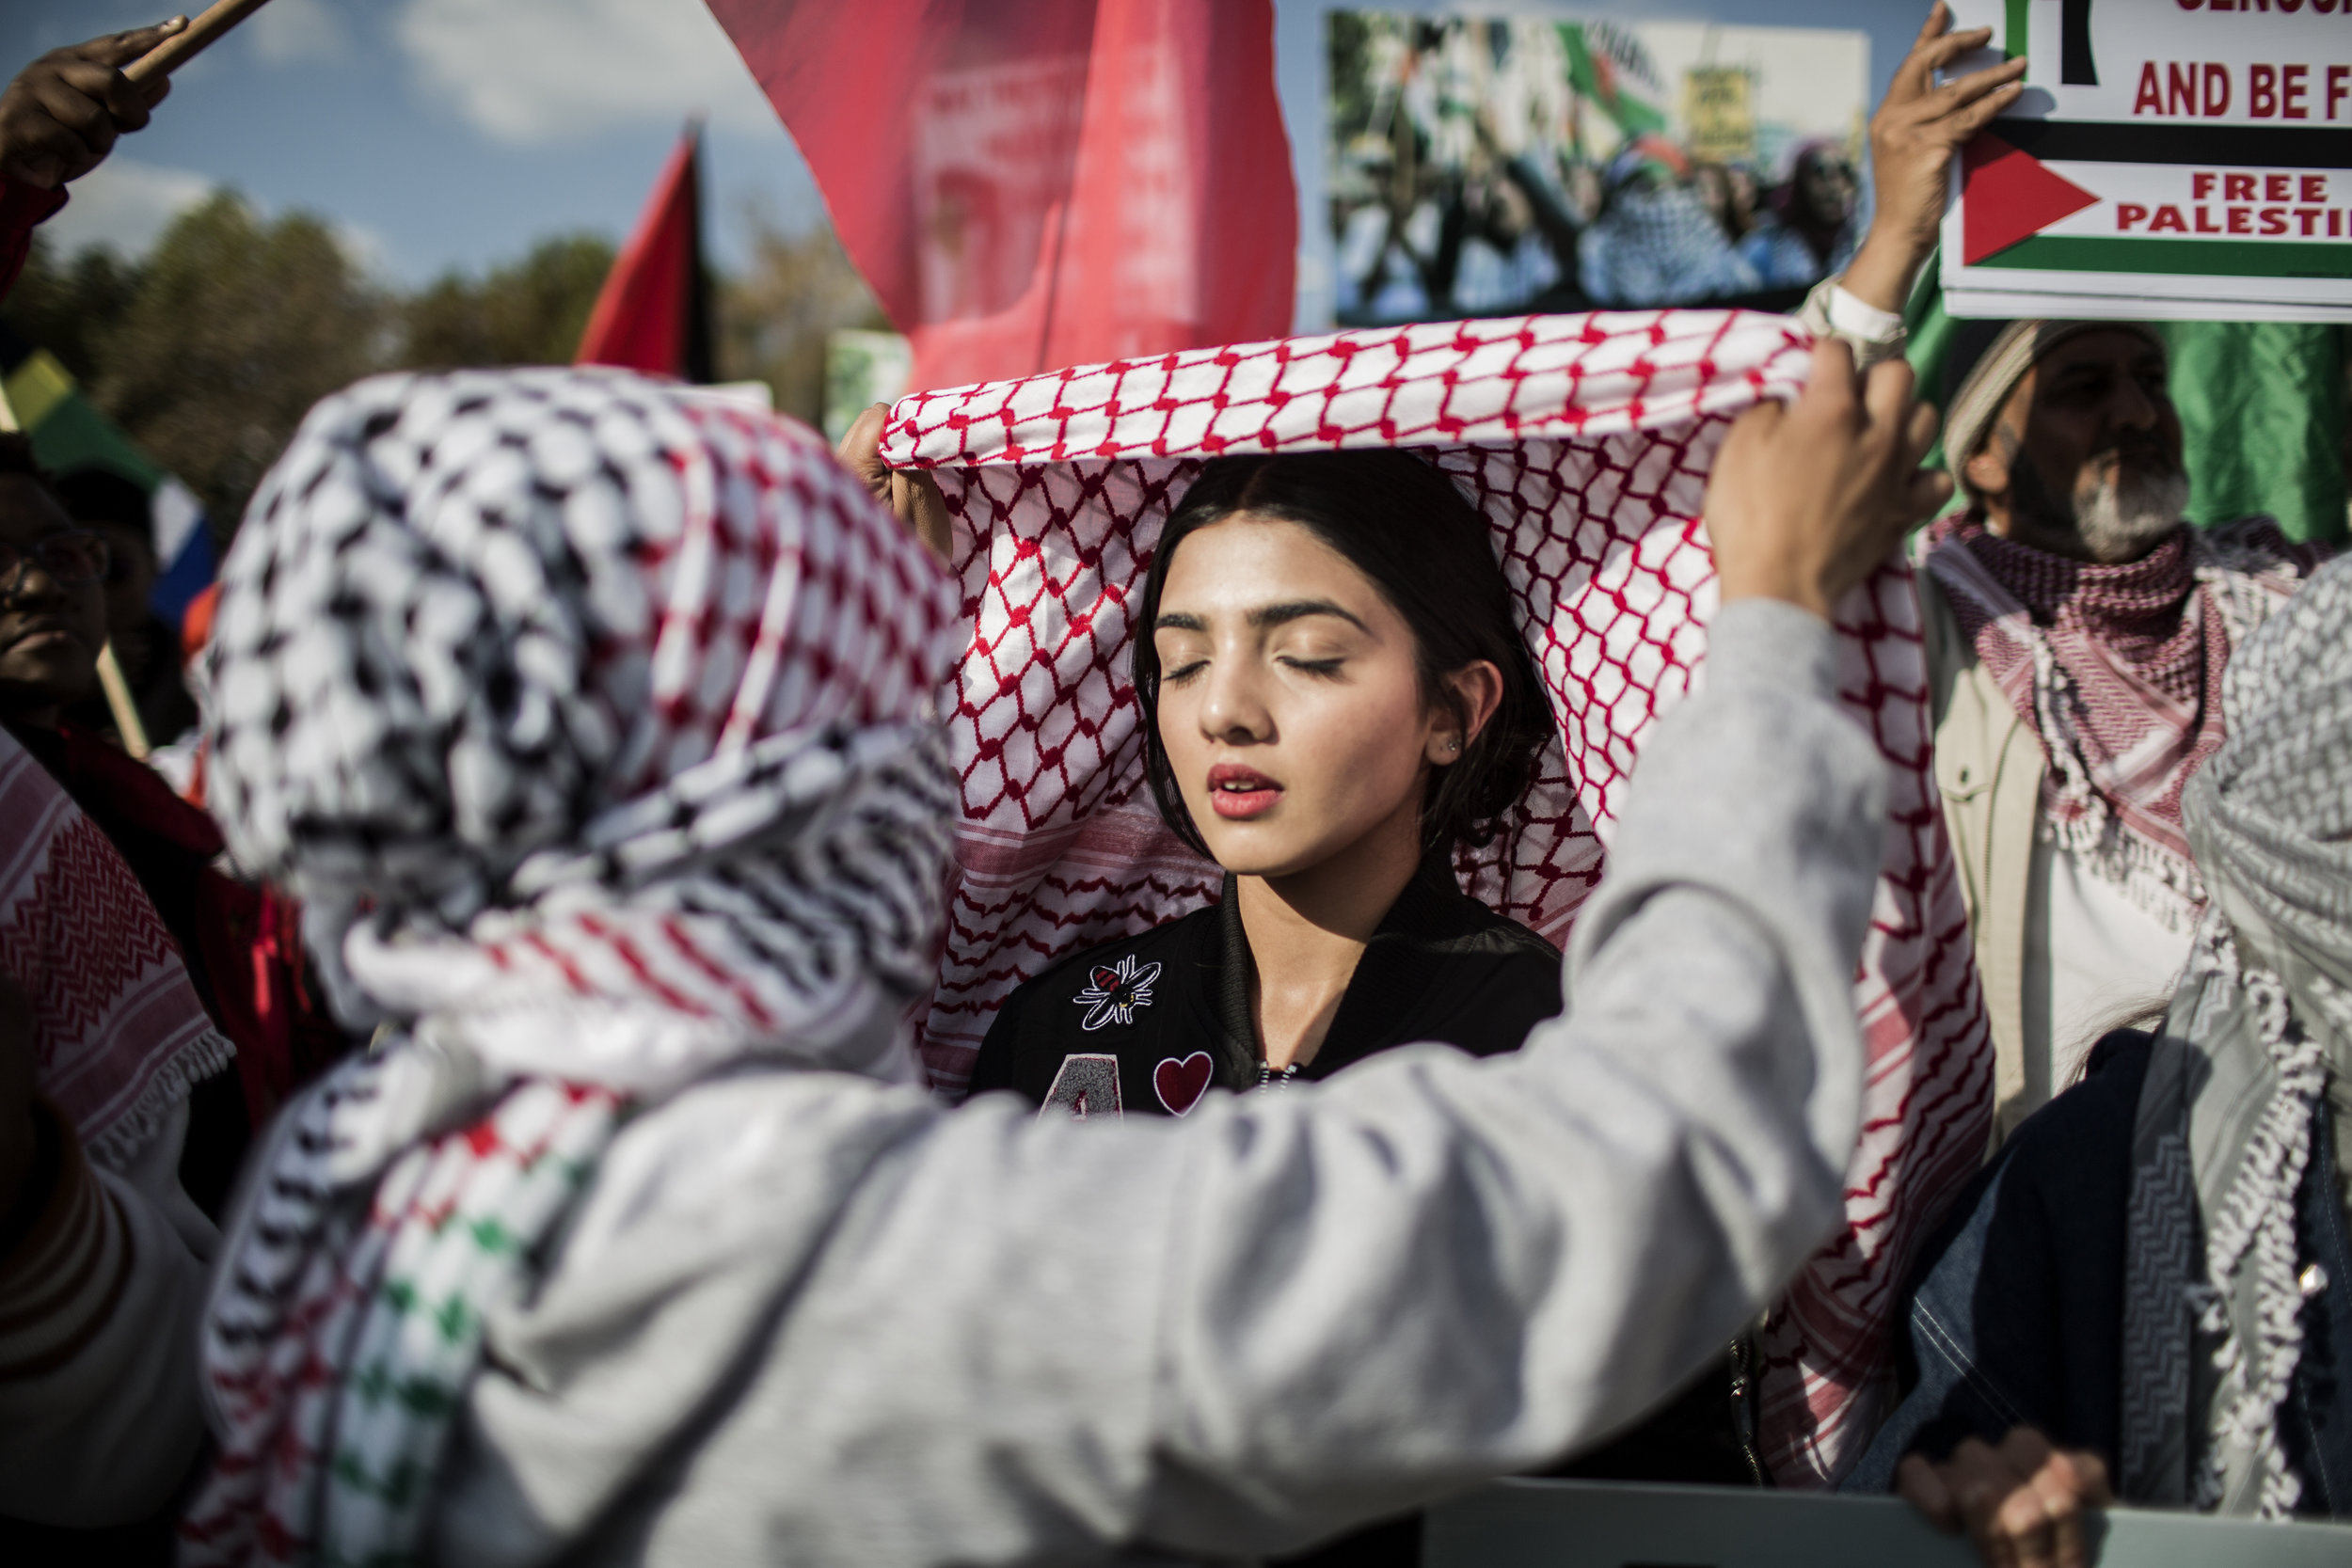 GULSHAN KHAN  gulshankhan.photoshelter.com  |  @gulshanii   A girl ties the Palestinian keffiyeh during a demonstration of members of pro-Palestinian groups and other civil society groups outside the U.S. Consulate General in Johannesburg, South Africa on Tuesday May 15, 2018 to protest against the killing of 59 Palestinians in clashes and protests the day before, coinciding with the United States formally moving its embassy in Israel from Tel Aviv to Jerusalem.